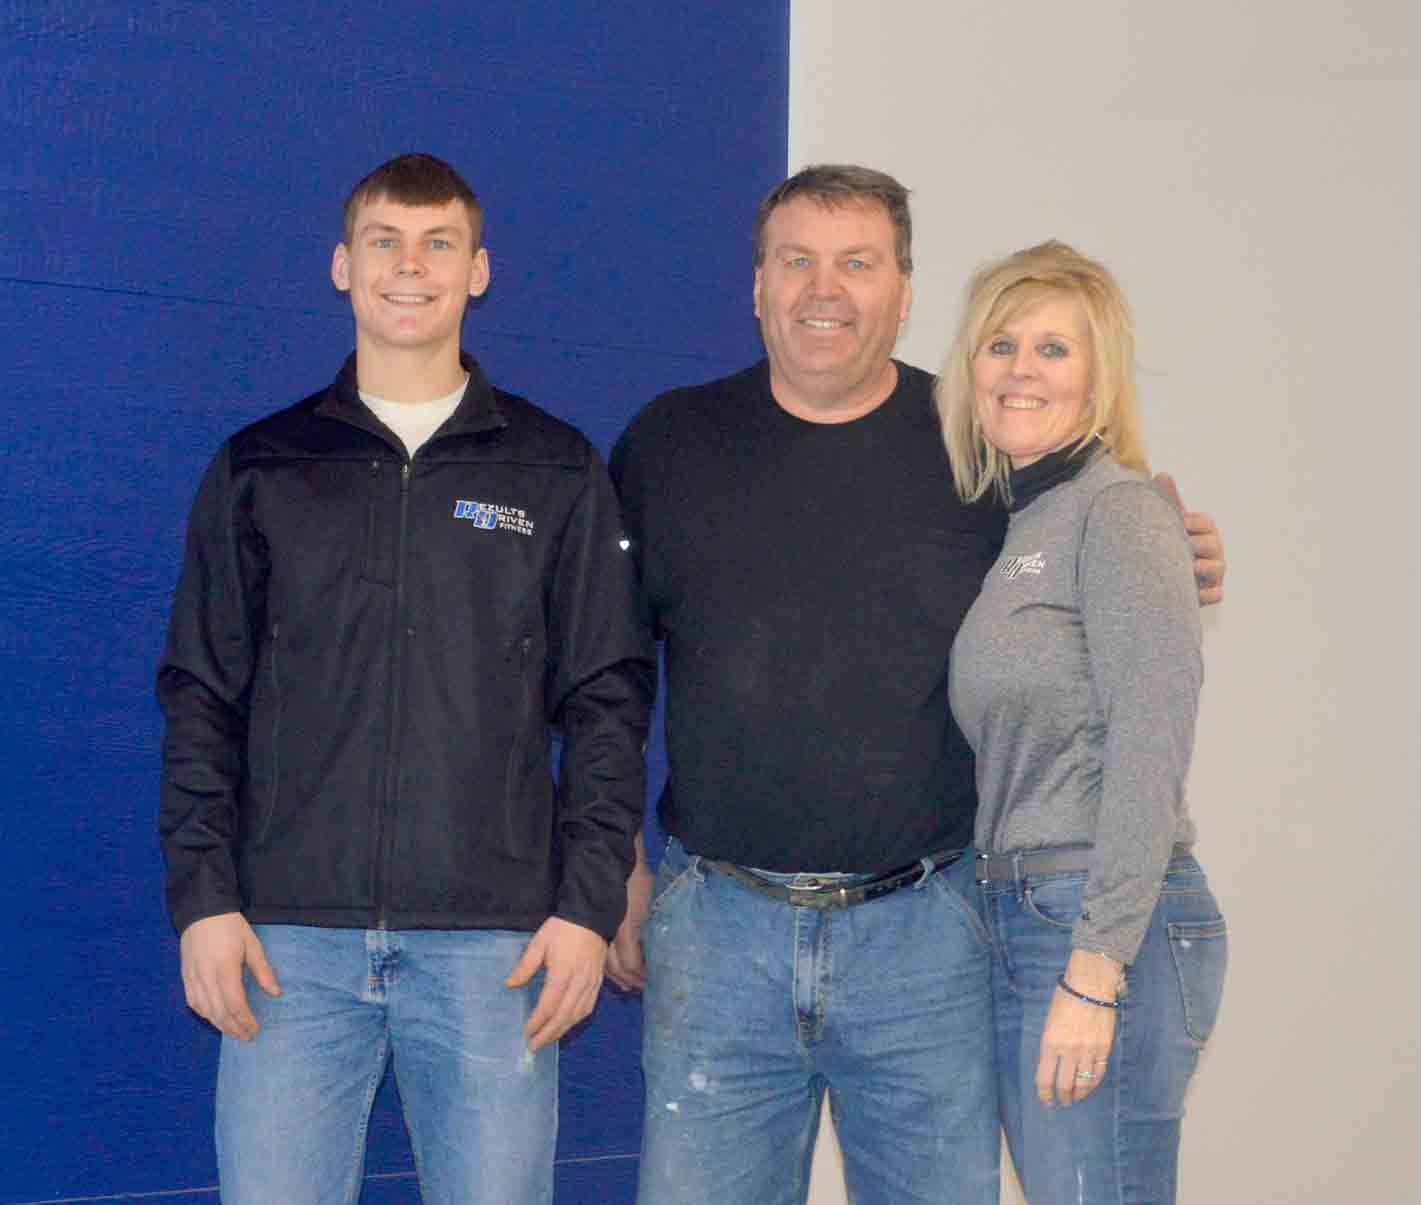 The Denner family from Fredericksburg, including (l-r) Ryan, Terry, and Teri, is looking forward to opening Rezults Driven Fitness in Calmar. The 24-hour gym, which features cardio, Cross Fit, strength training/free weights, functional training equipment, personal training, and small group...